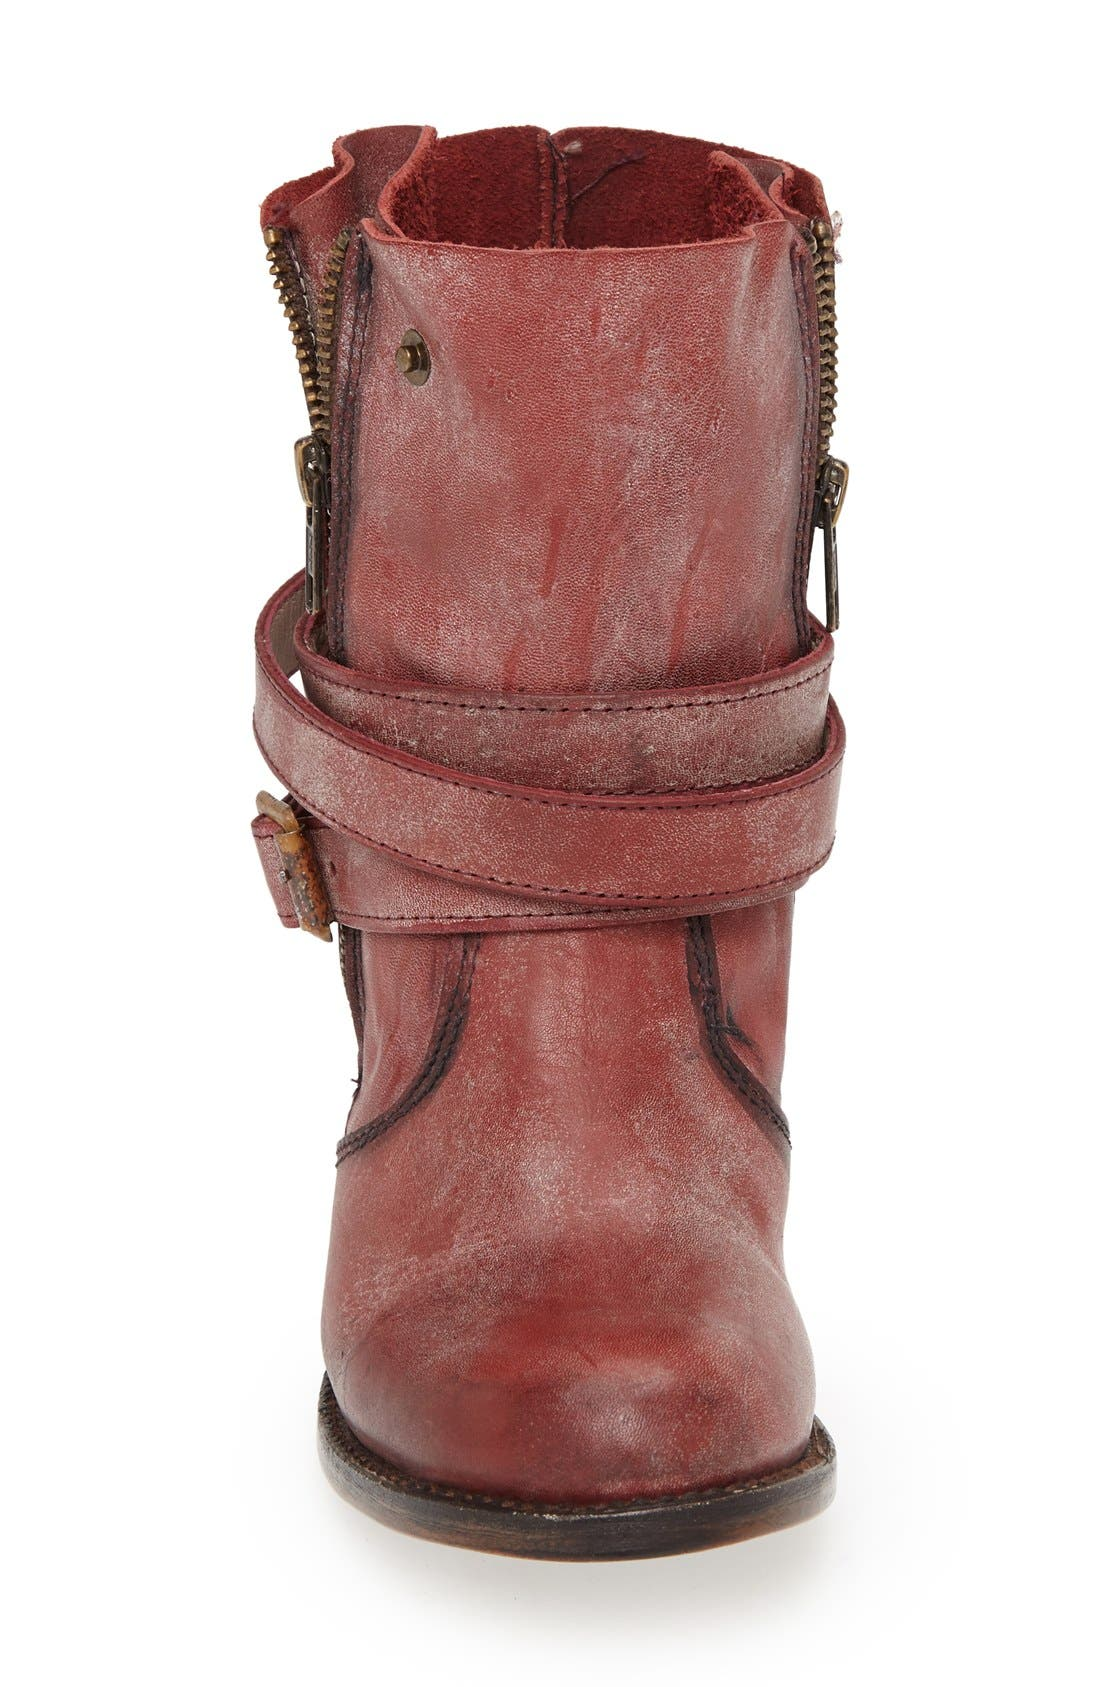 'Bama' Leather Ankle Bootie,                             Alternate thumbnail 4, color,                             600